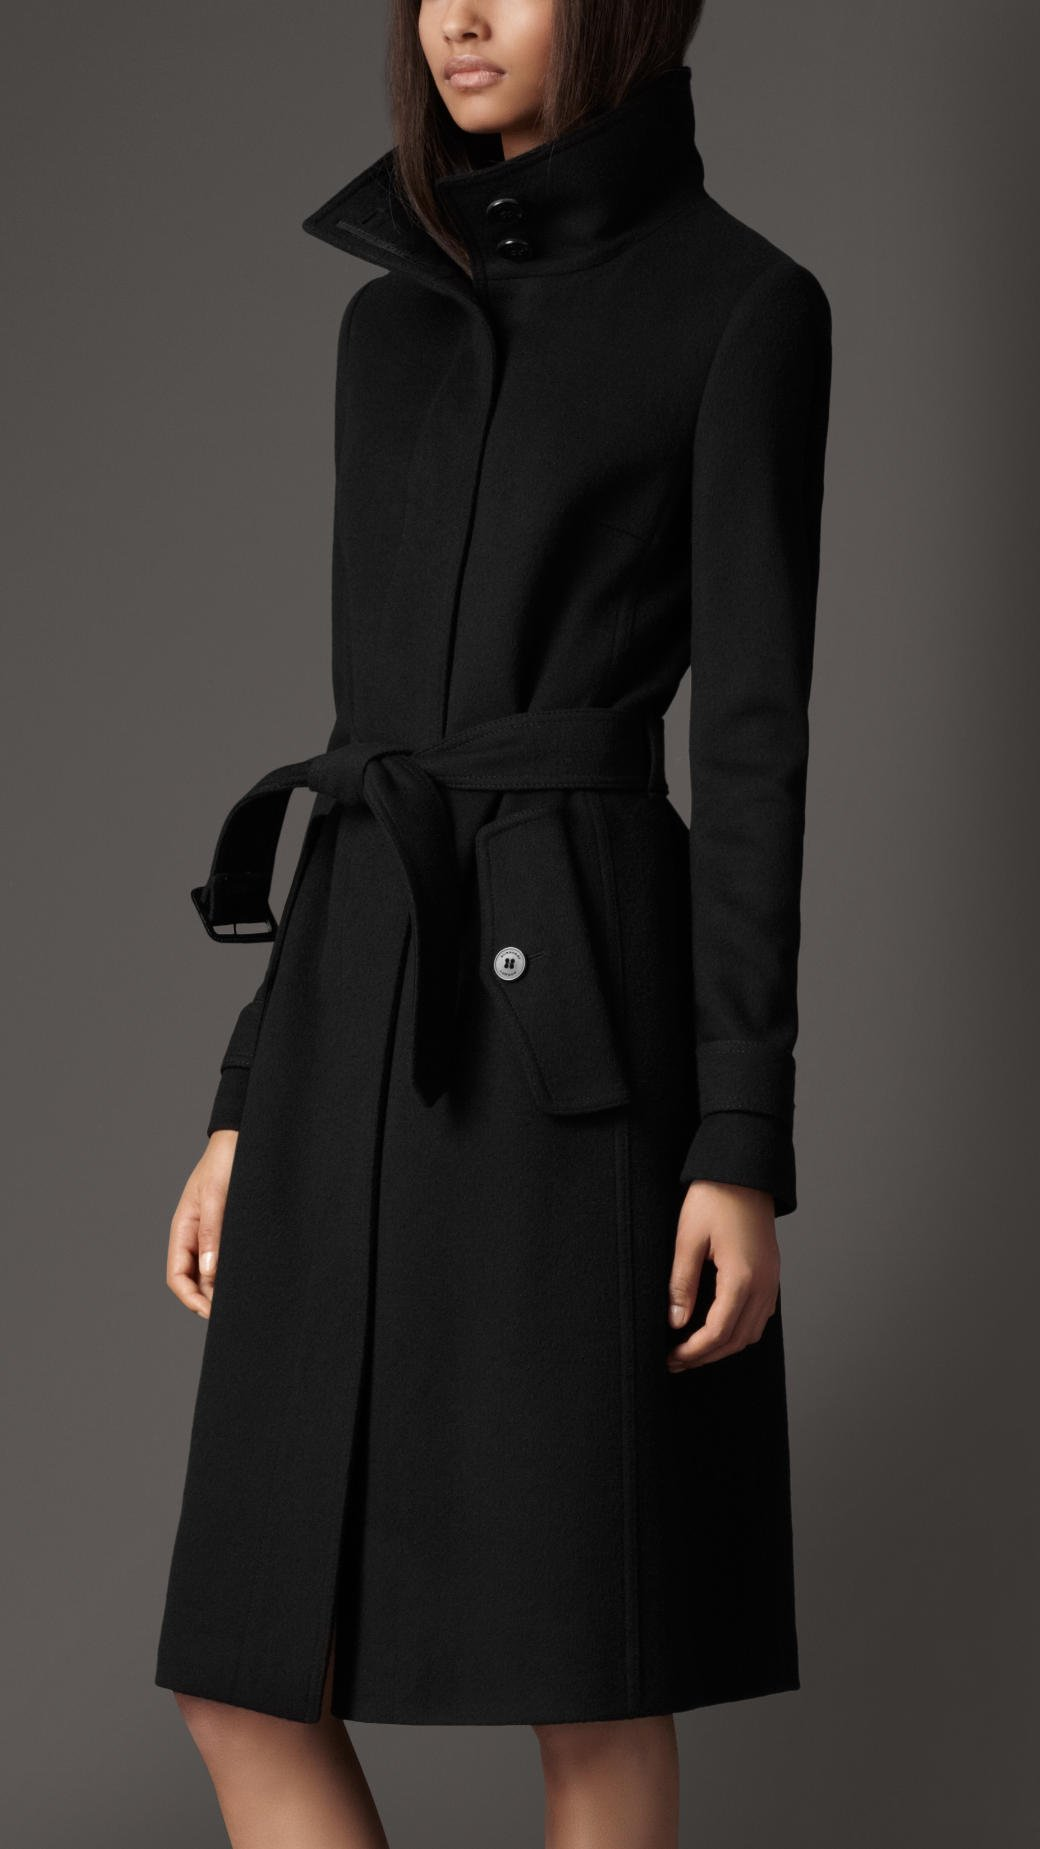 Burberry Wool Cashmere Coat in Black | Lyst